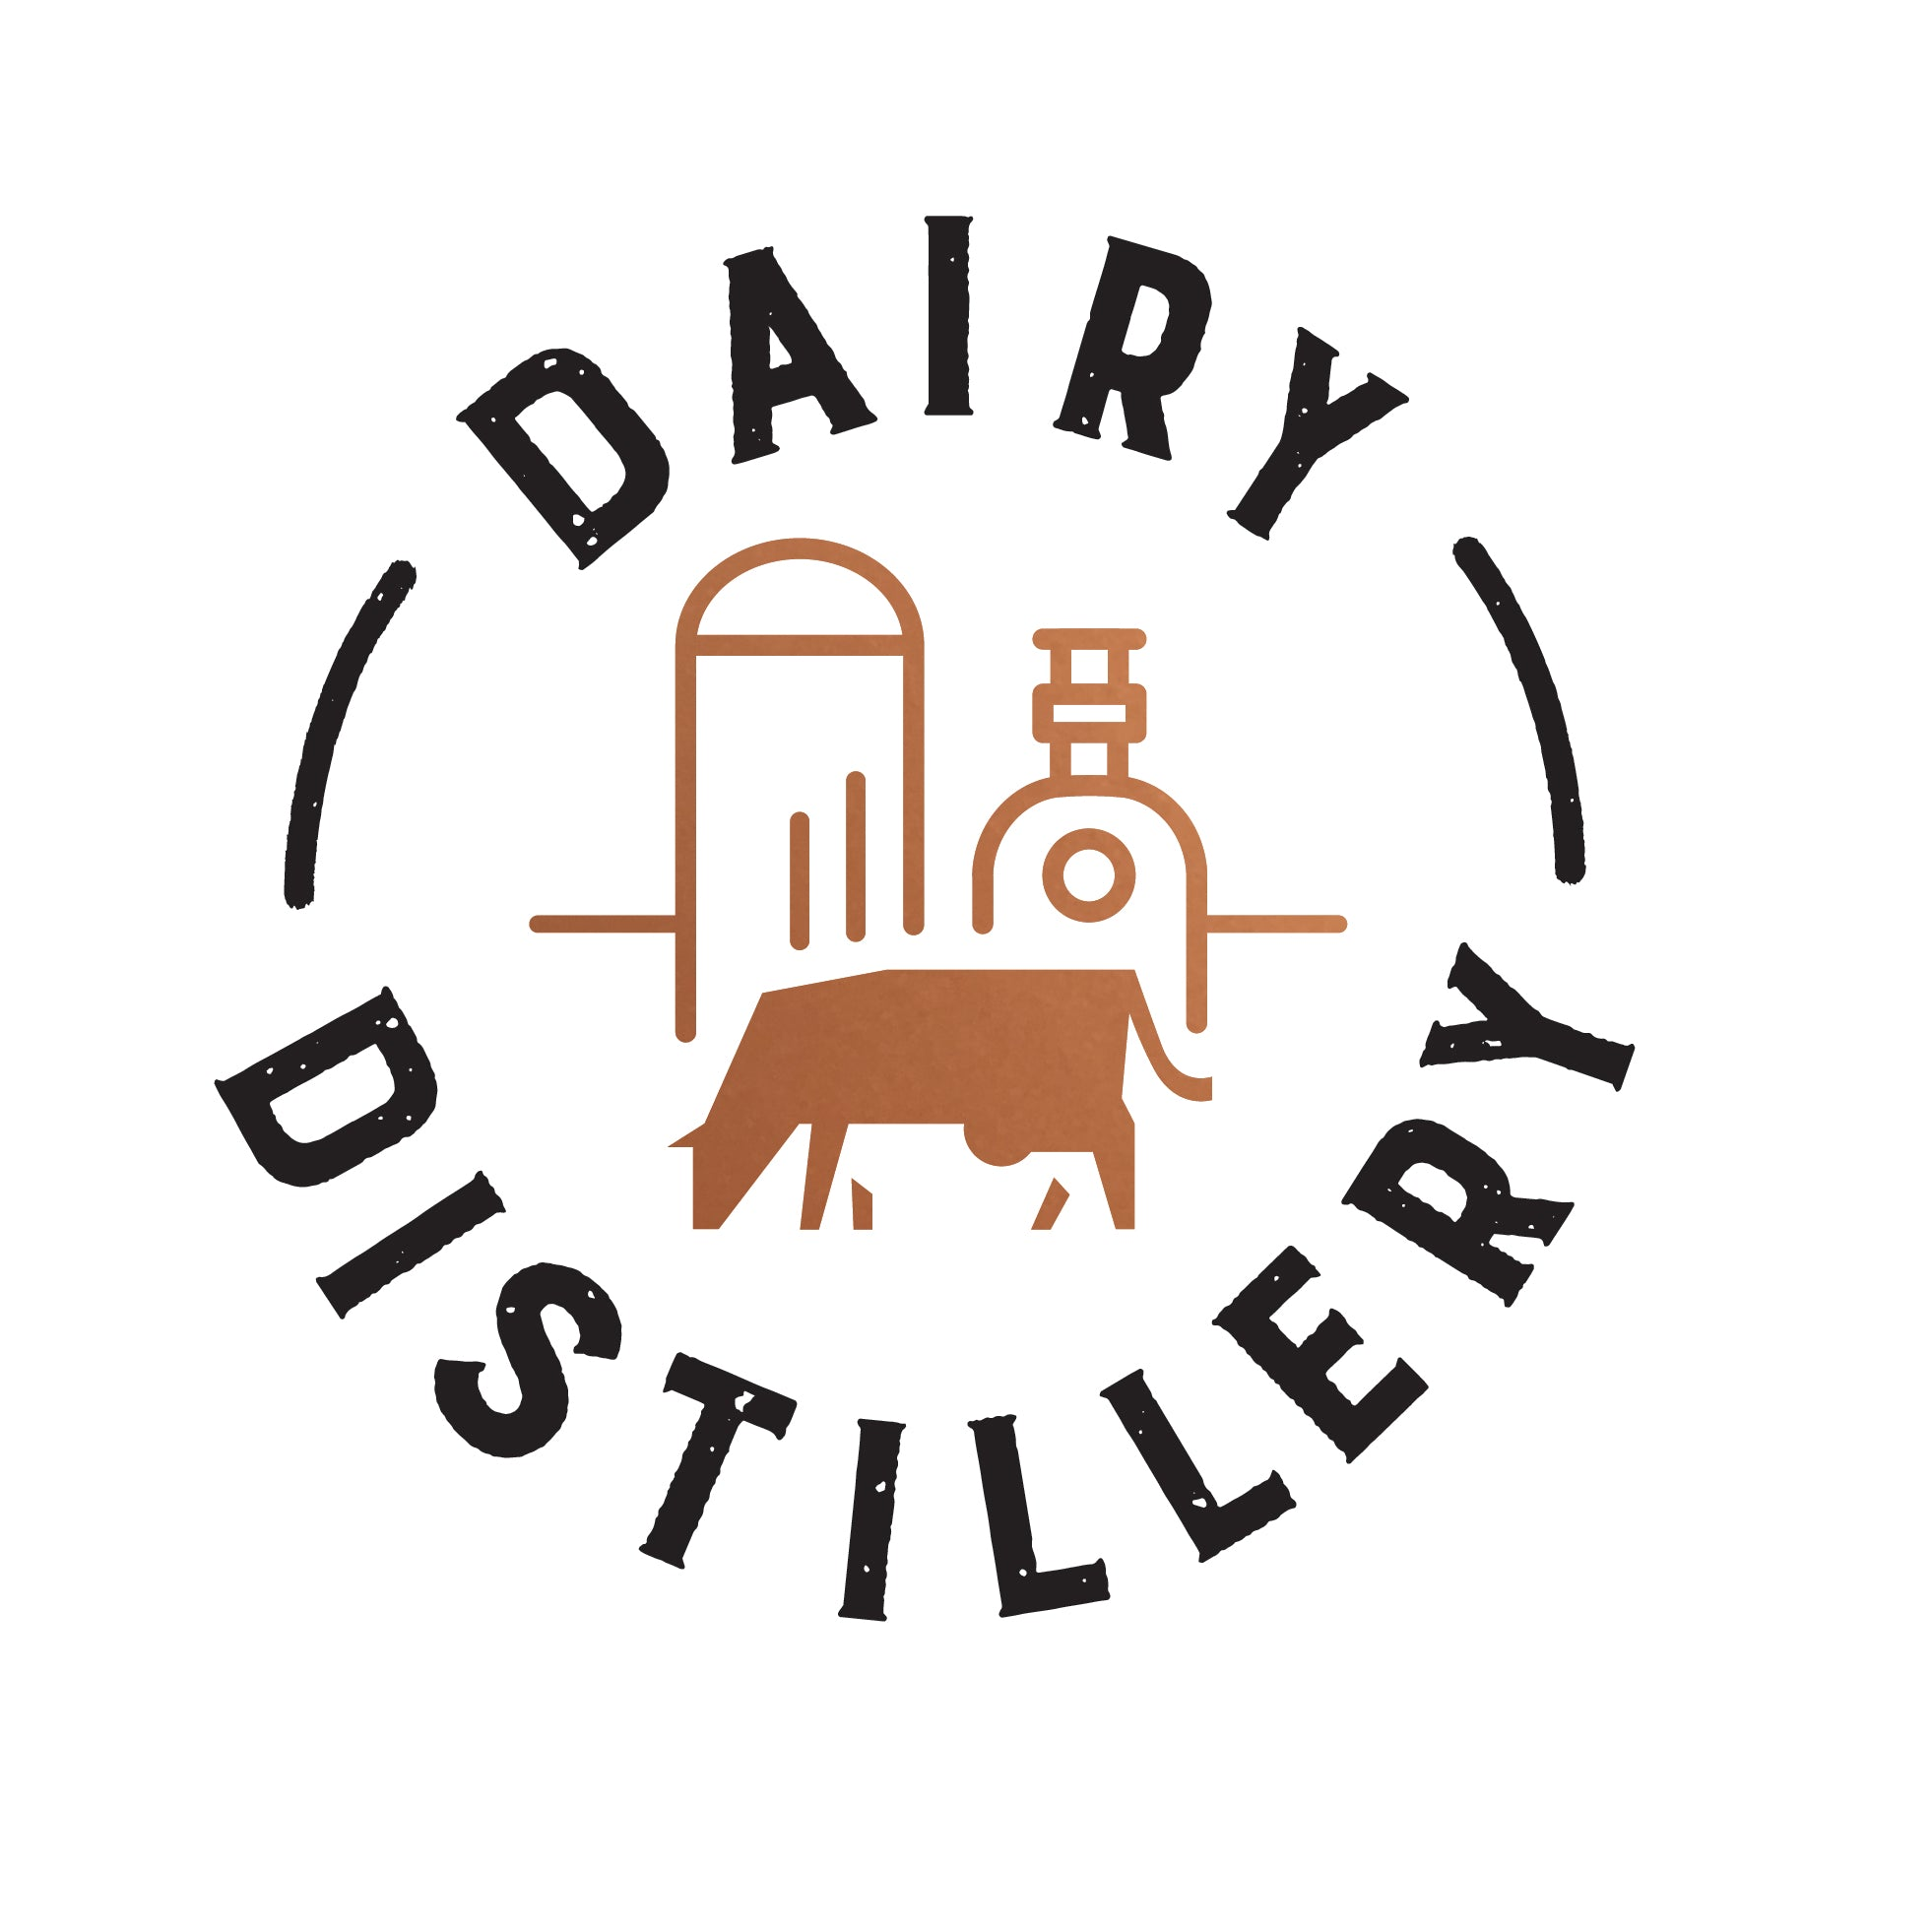 The Dairy Distillery's logo